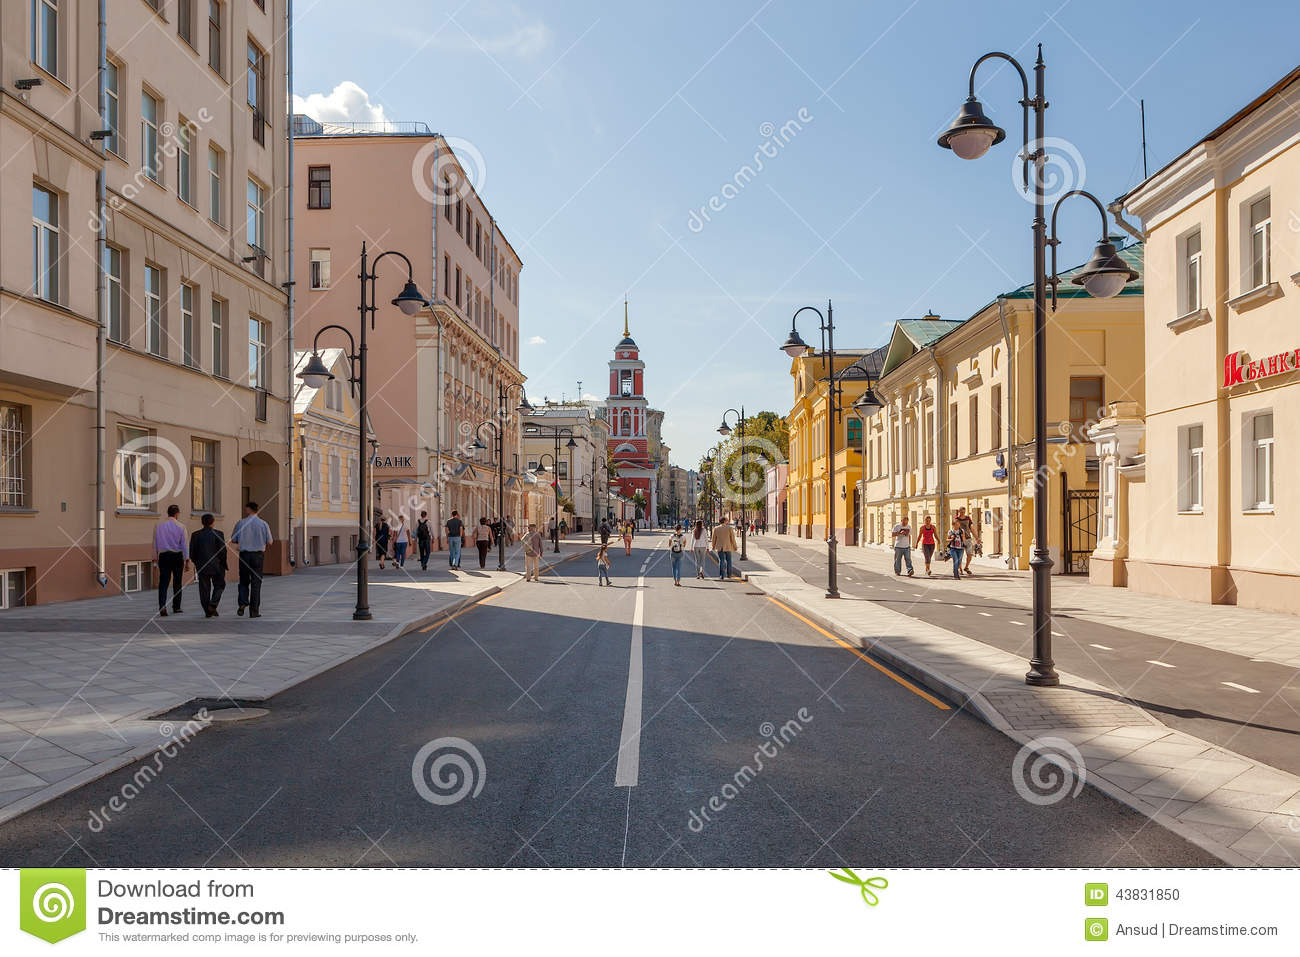 Moscow walk: reconstructed streets after winter